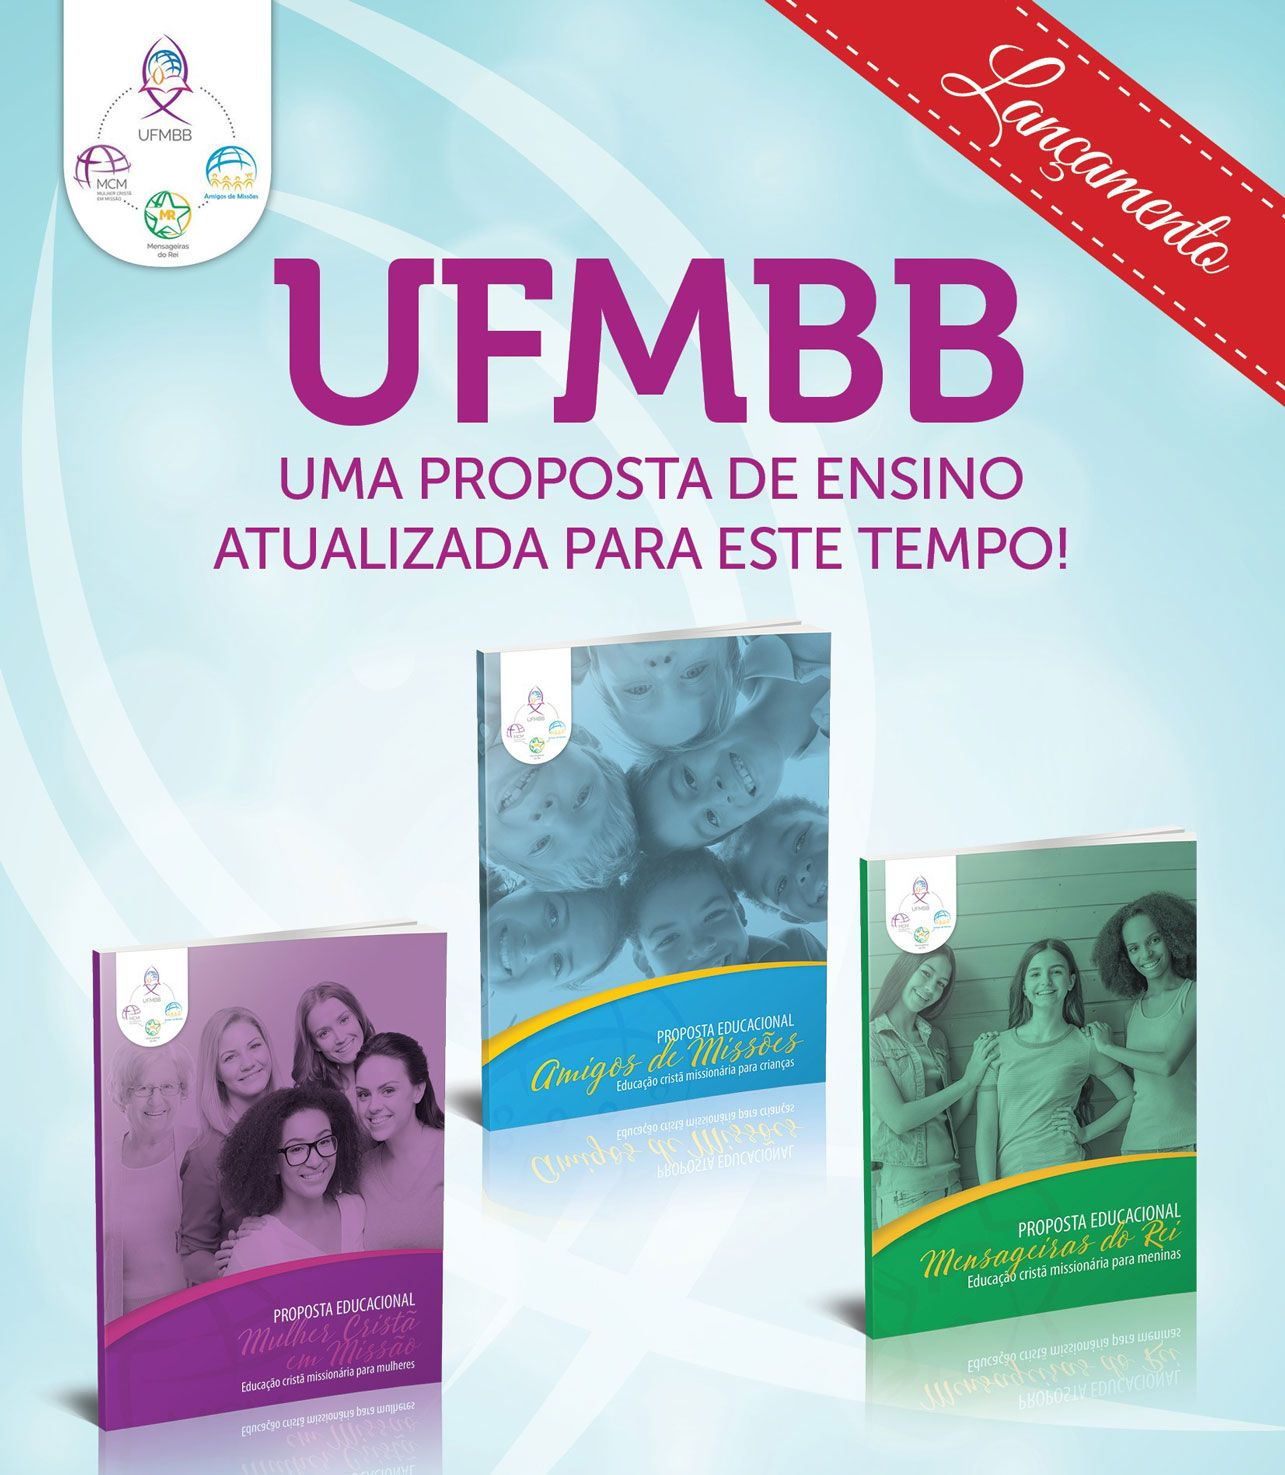 KIT PROPOSTAS EDUCACIONAIS: MCM - MR - AM  - LOJA VIRTUAL UFMBB